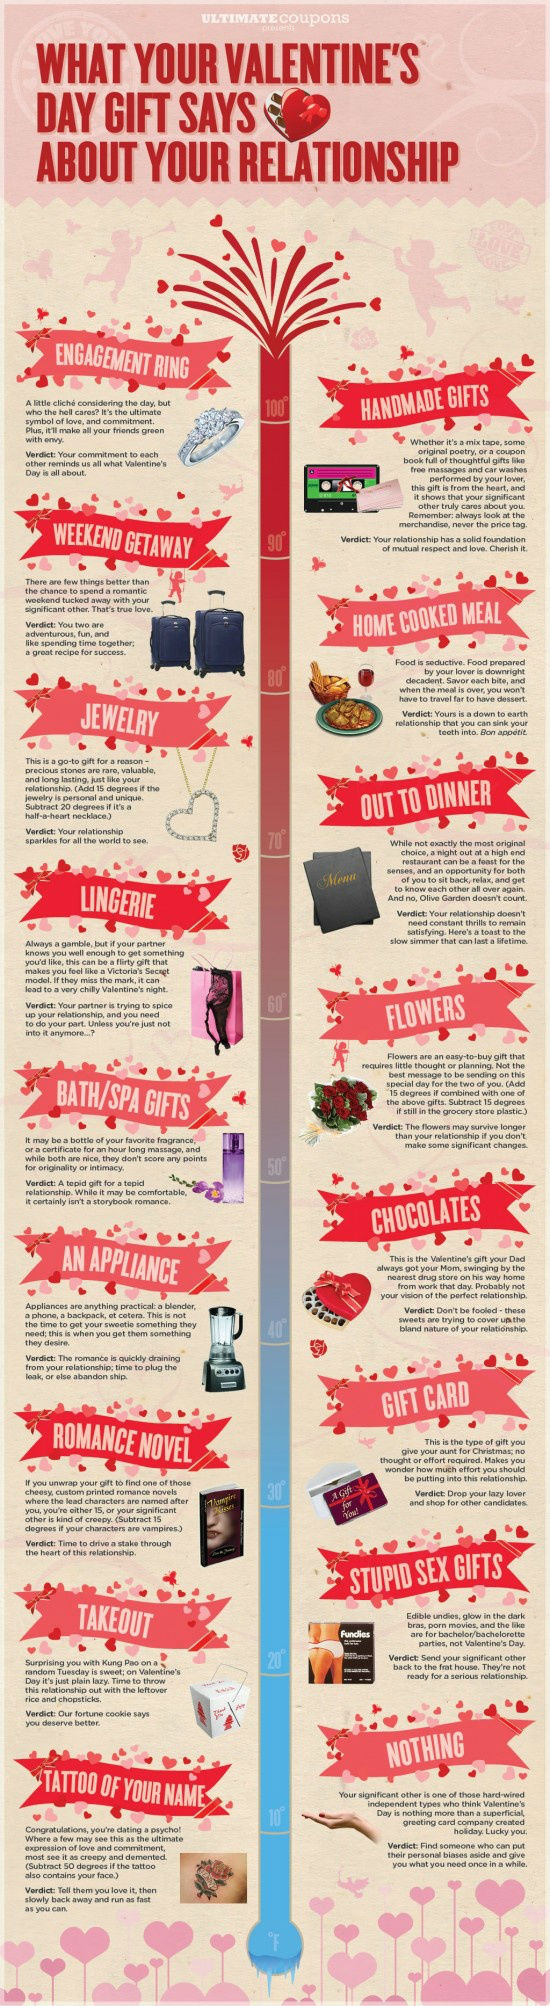 What Your Valentine's Day Gift Says About Your Relationship [Infographic]